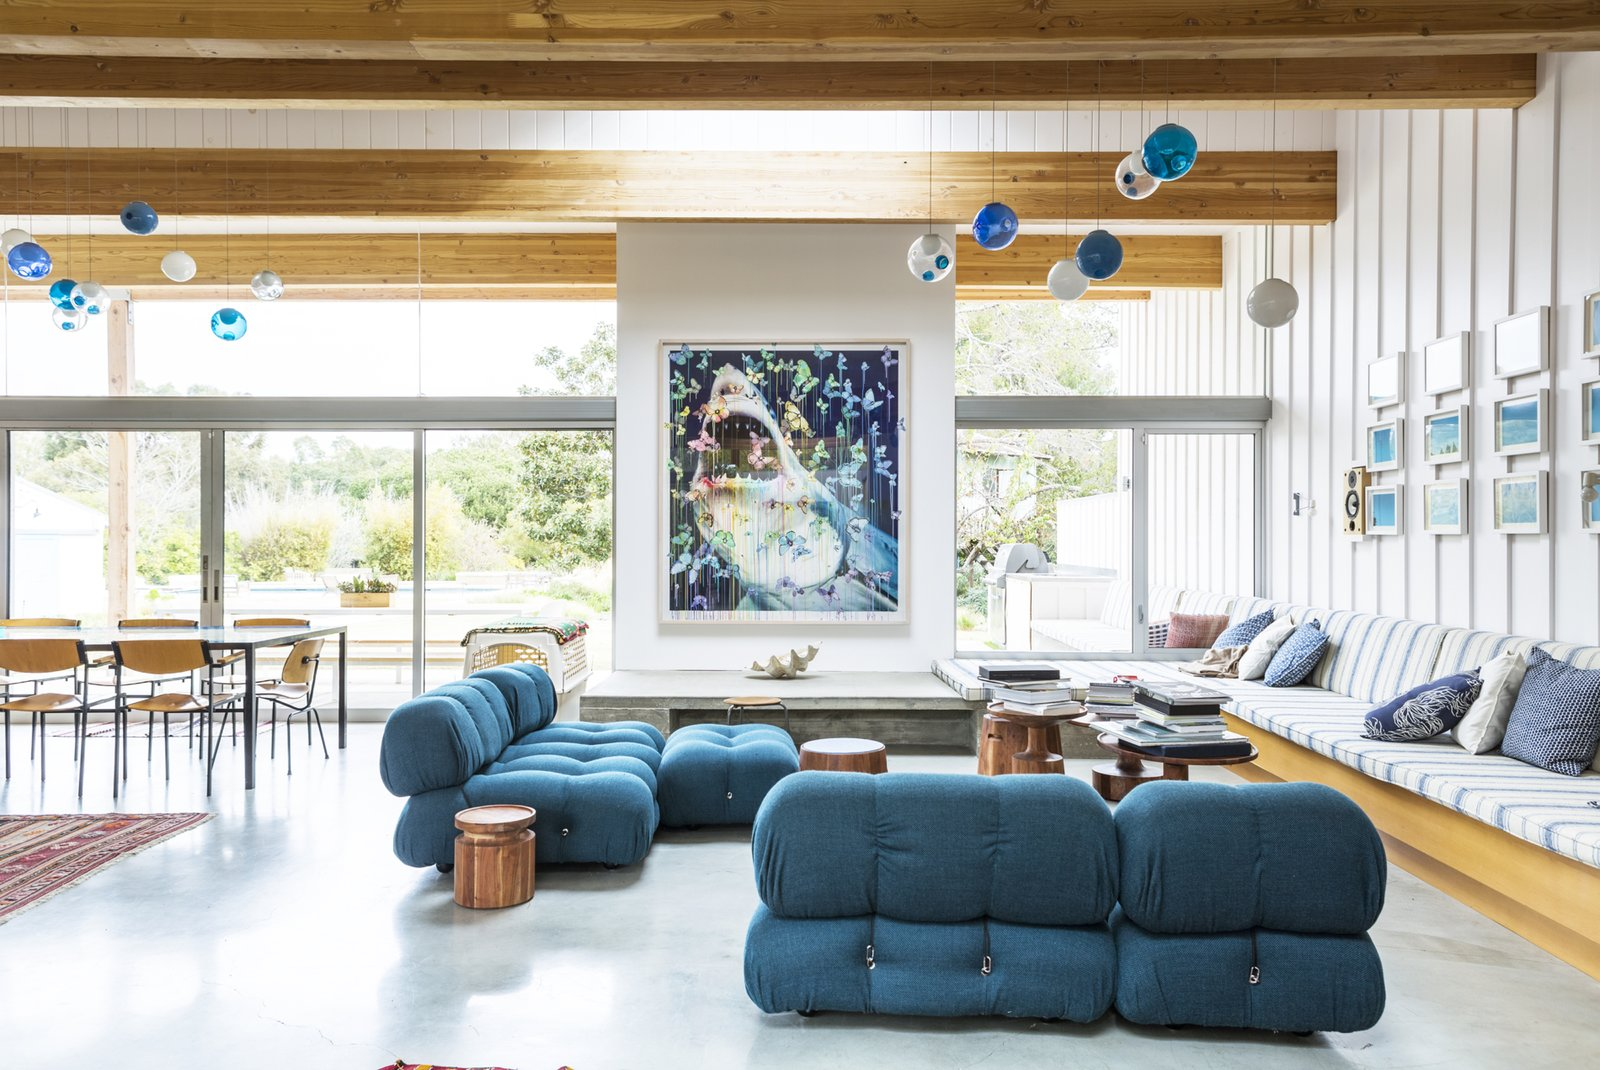 Photo 7 of 7 in Trend Report: Architect Barbara Bestor Sounds Off on the New Glass House